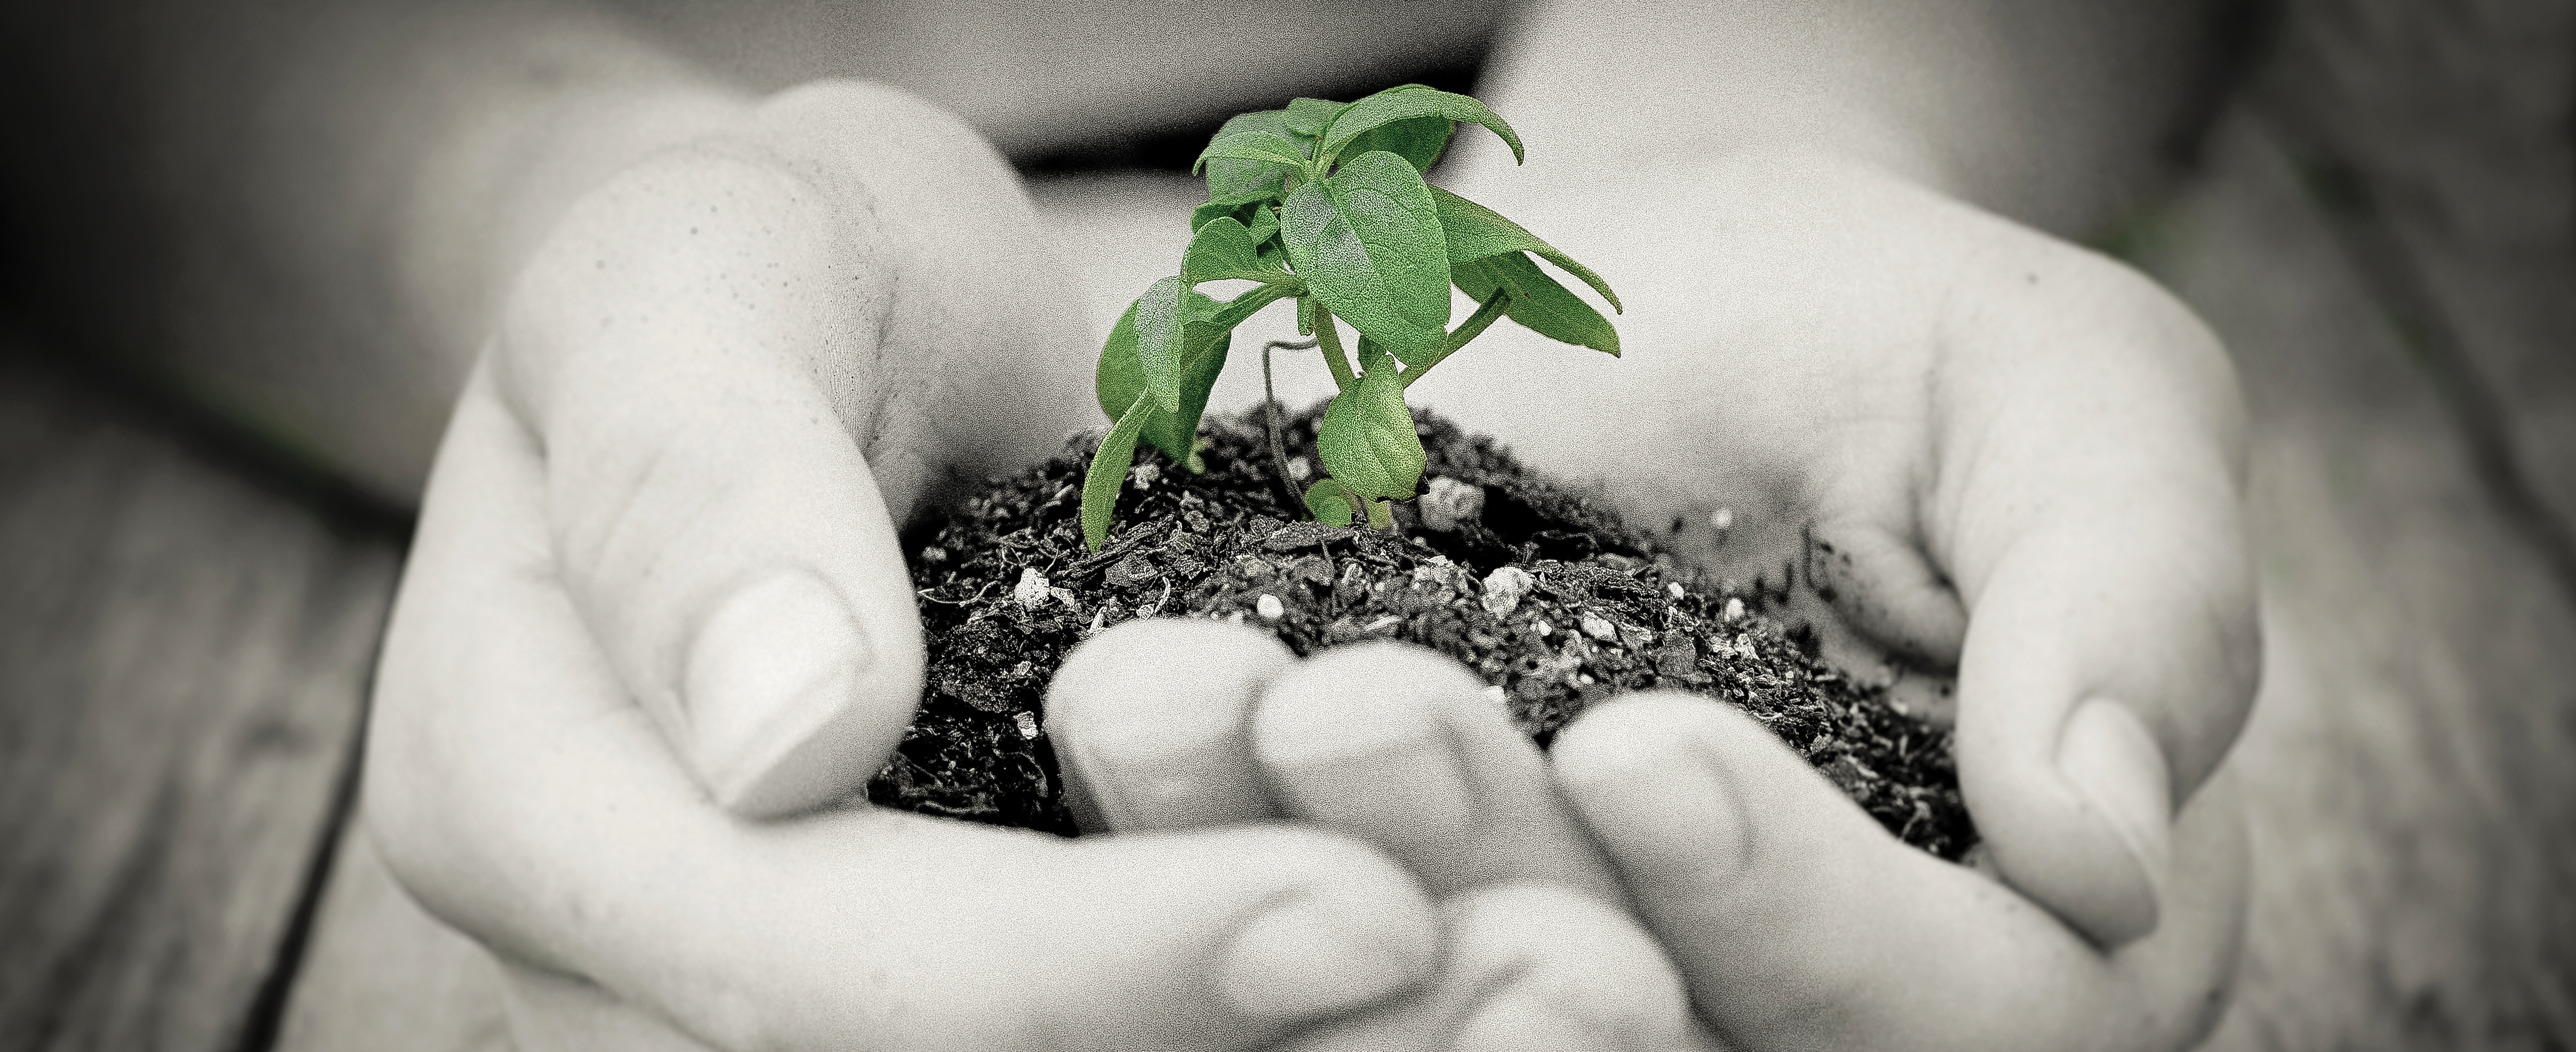 Plant seeds of hope